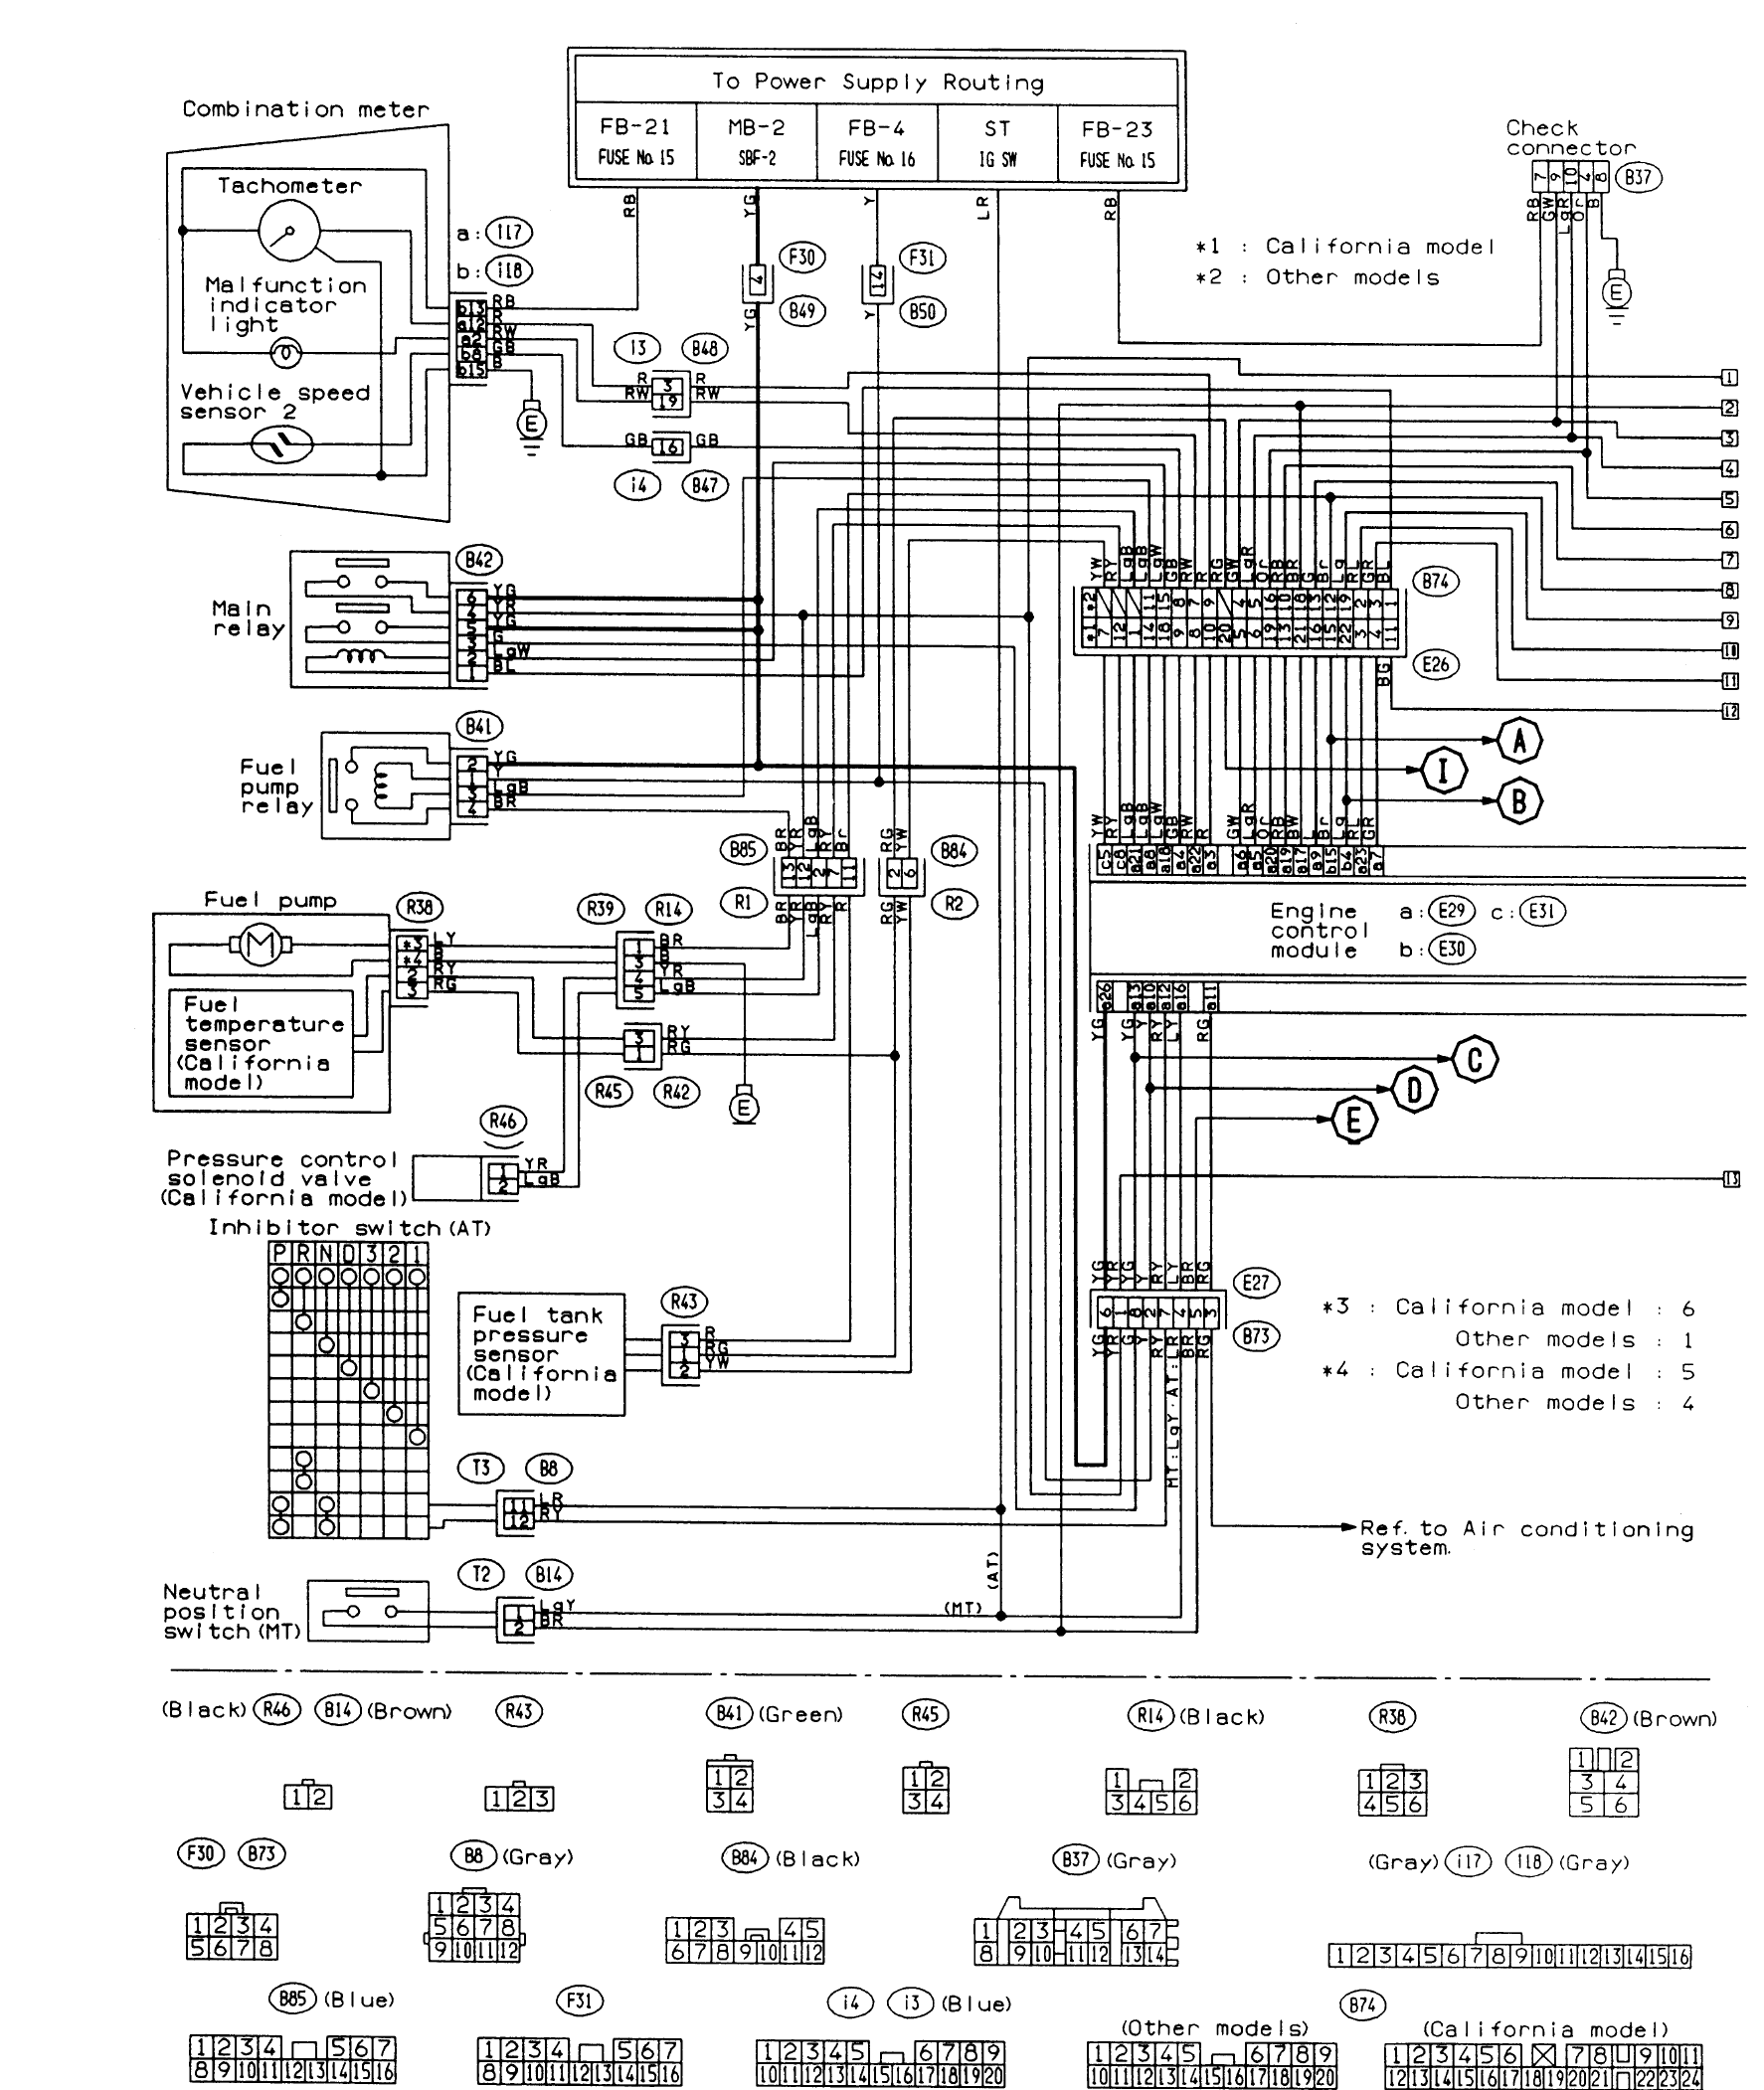 DIAGRAM] 1996 Subaru Wiring Diagram FULL Version HD Quality Wiring Diagram  - SUSPENSION-STEDAN.PORTOGRUARONLINE.ITportogruaronline.it